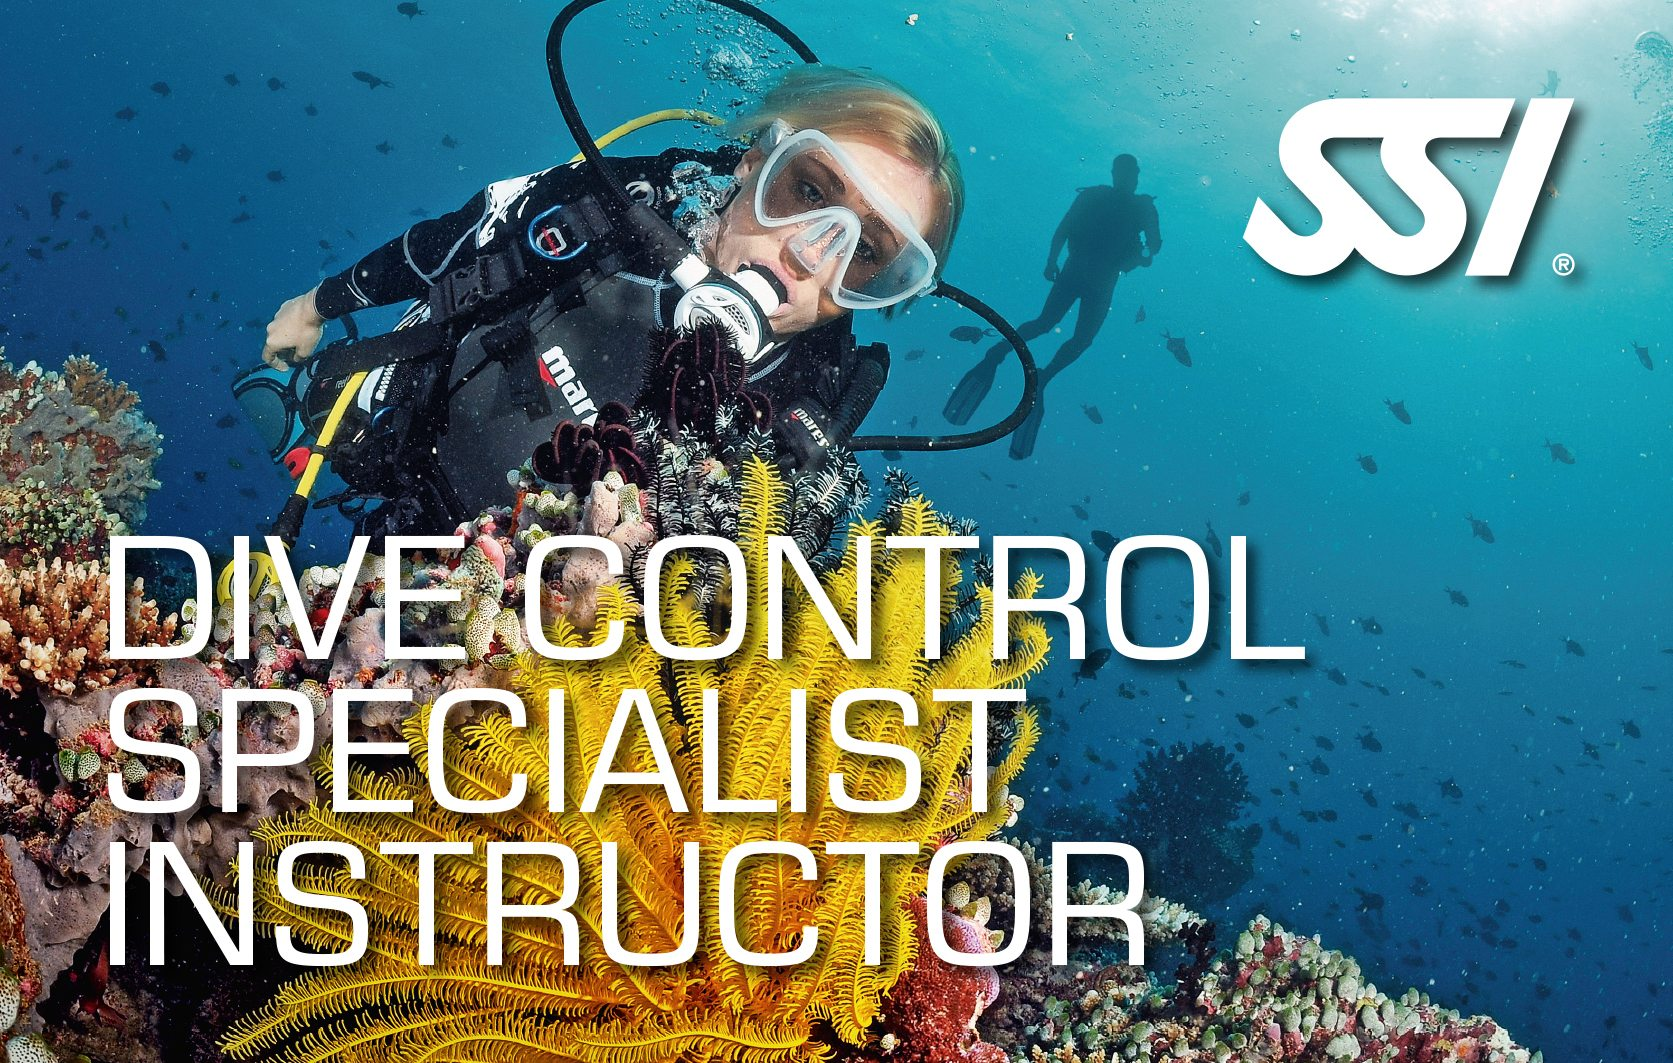 SSI Dive Control Specialist Instructor Course | SSI Dive Control Specialist Instructorr | Dive Control Specialist Instructor | Diving Course